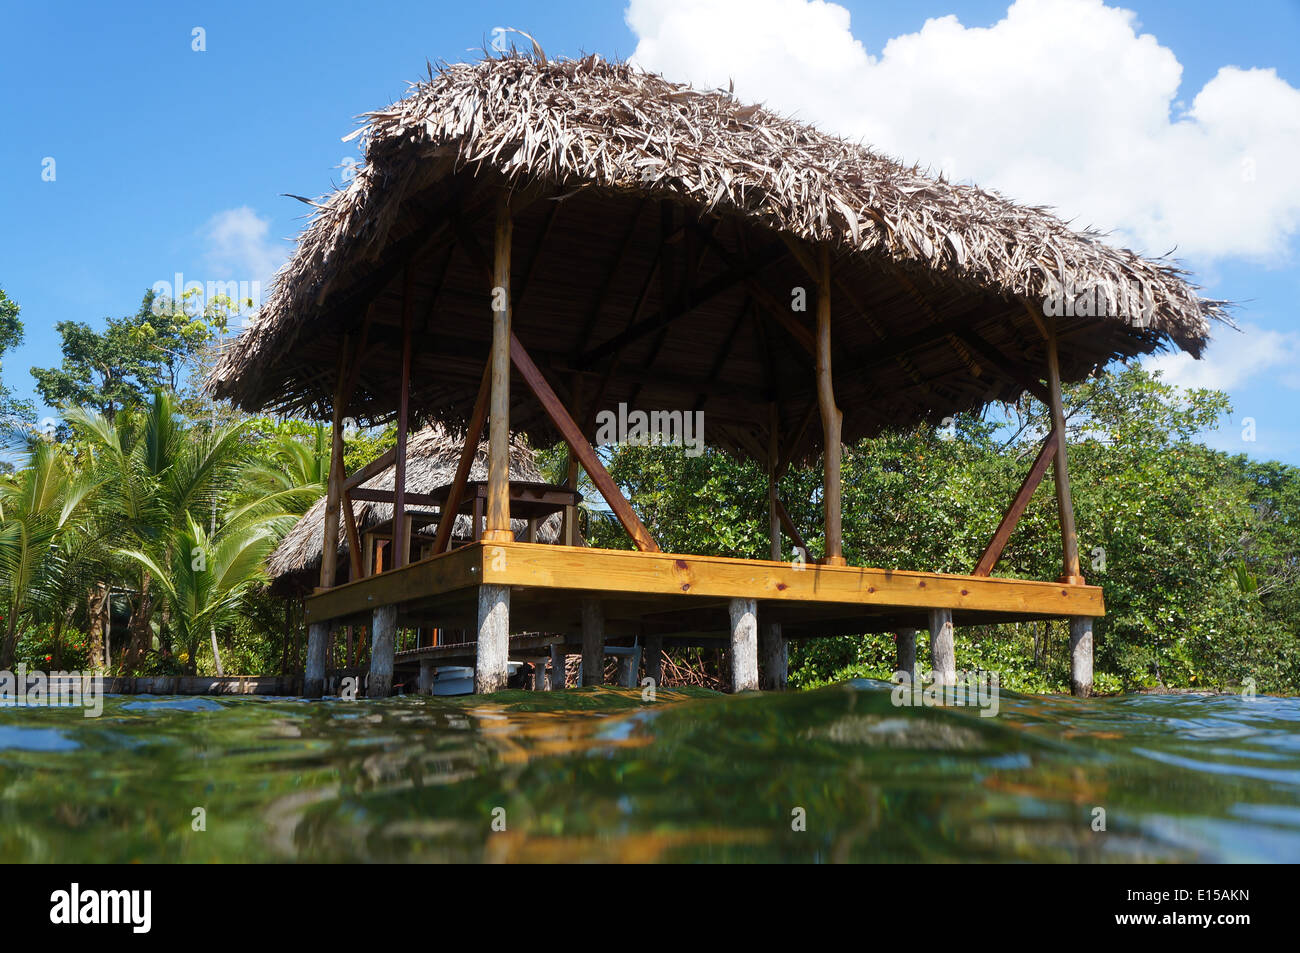 Thatched hut on stilts viewed from the sea surface - Stock Image